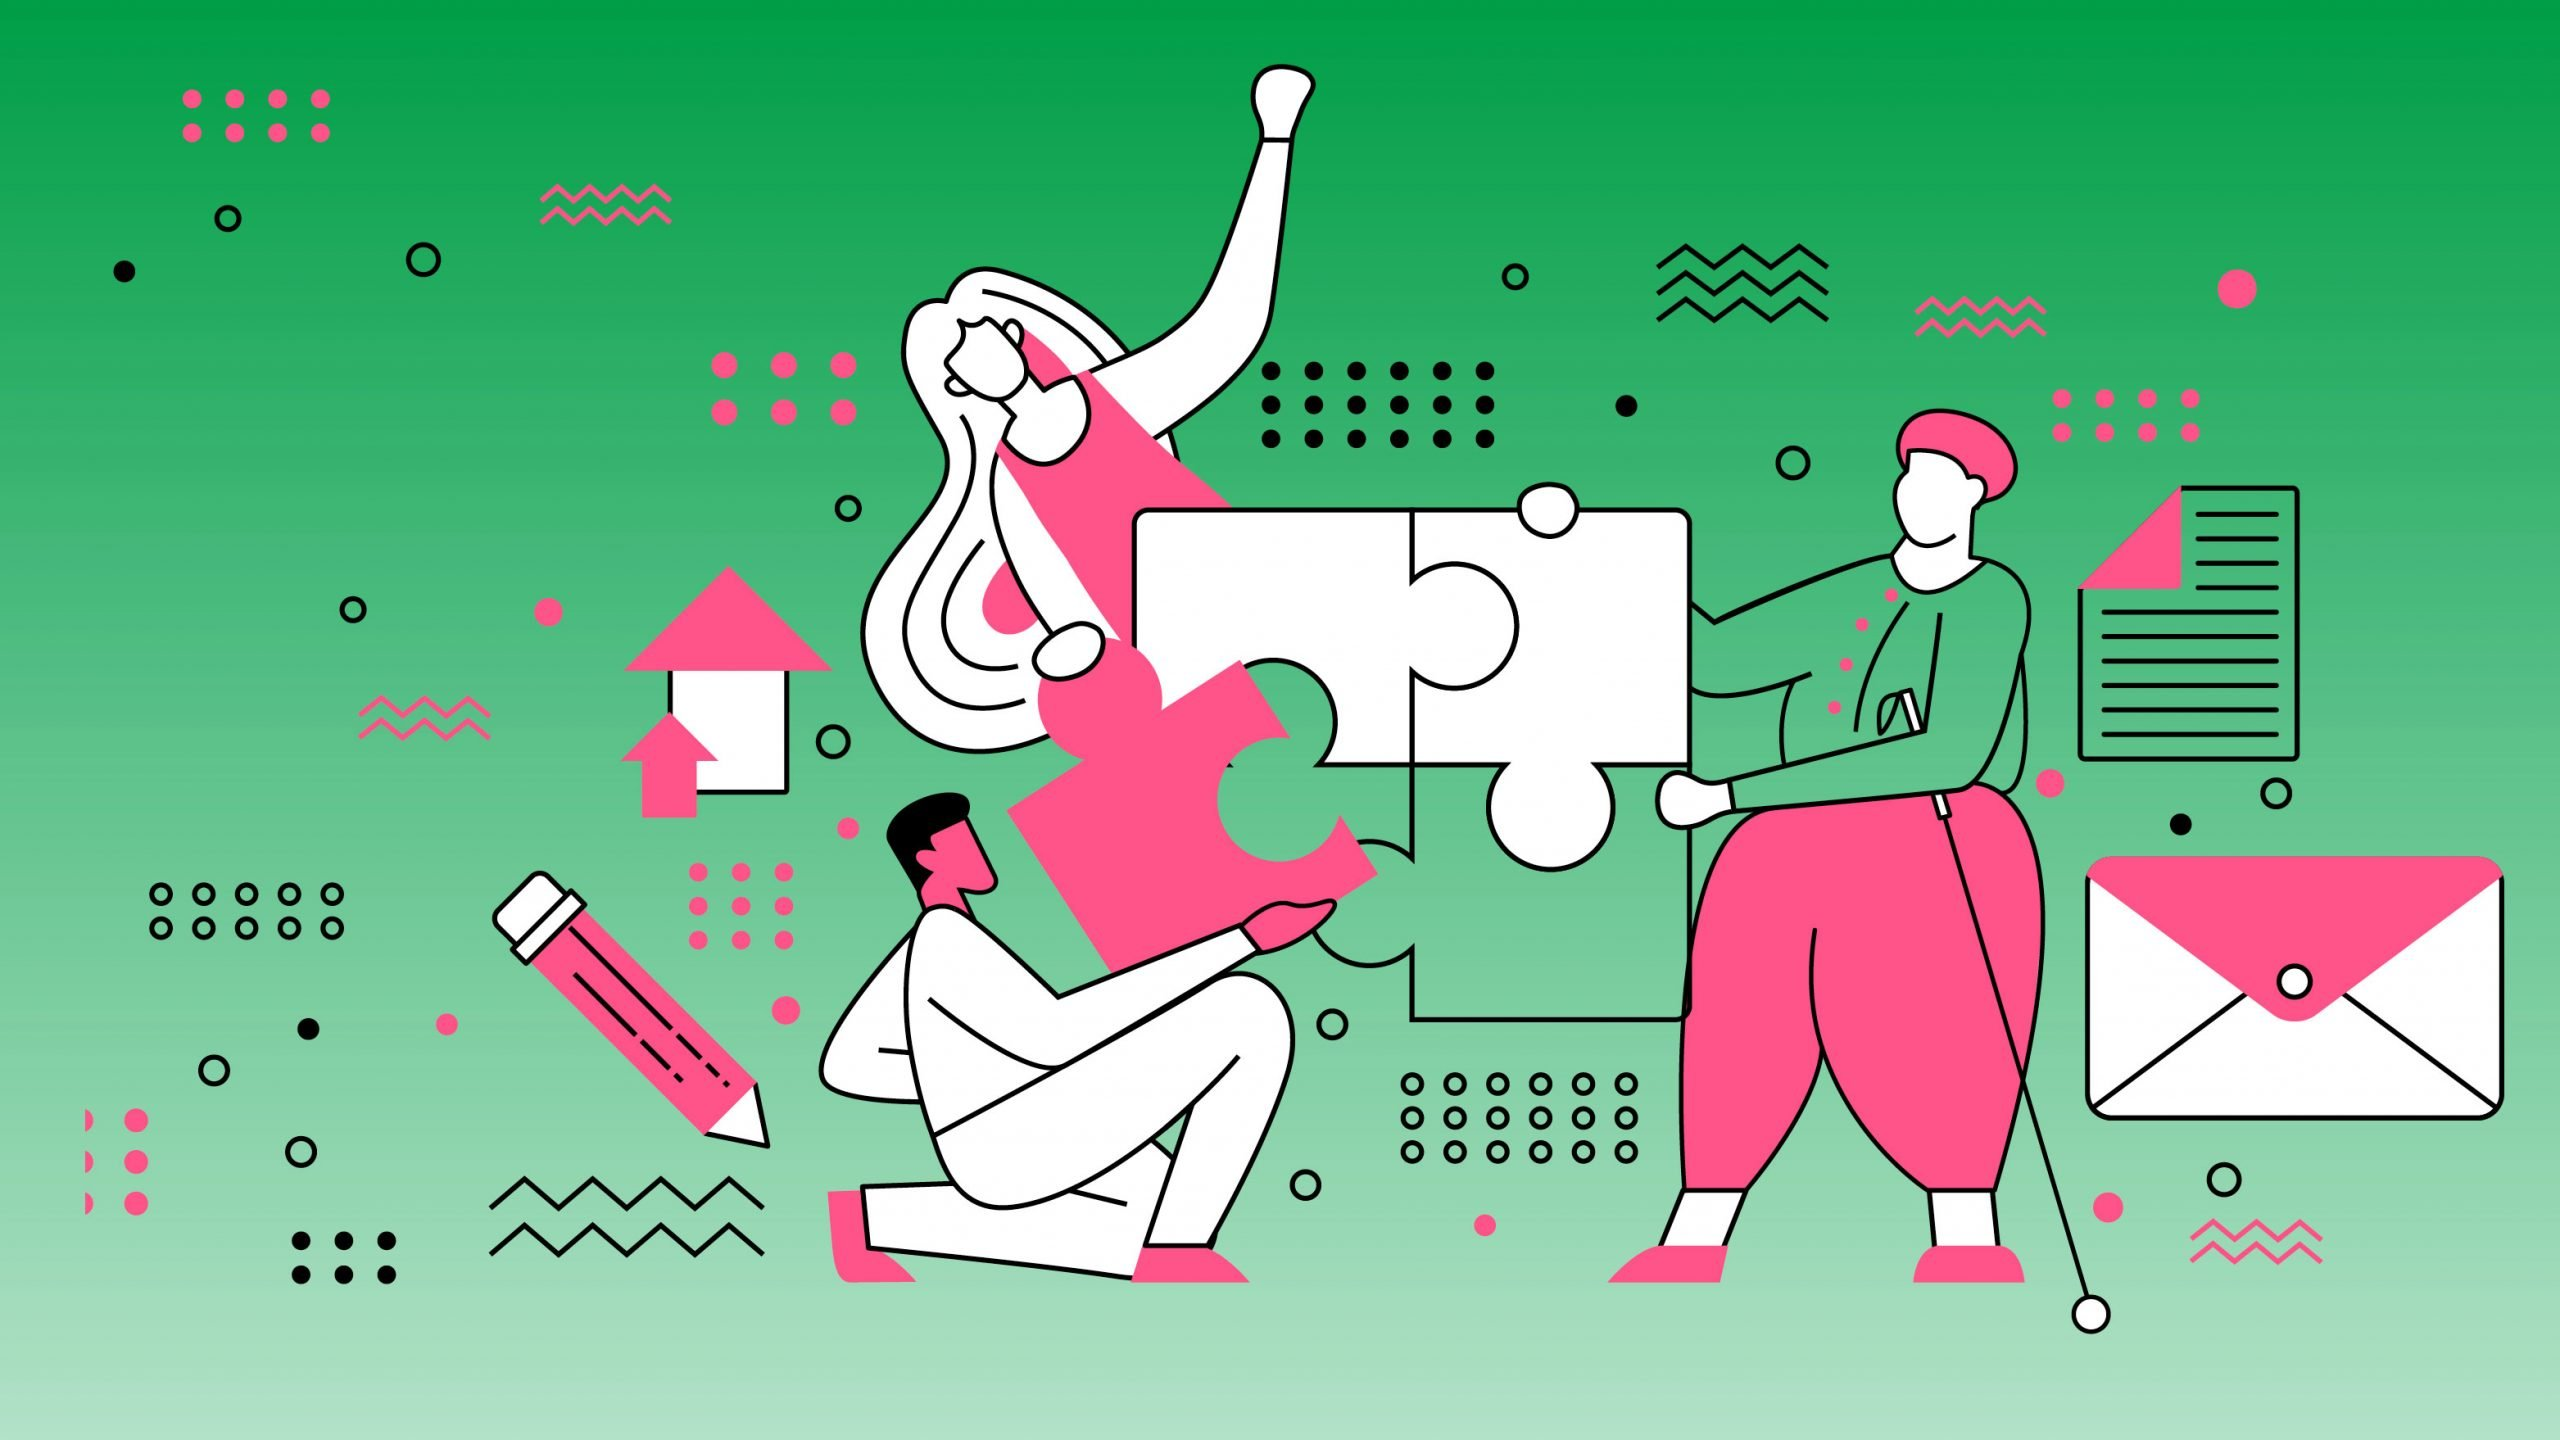 Three stylised figures representing diverse communicators, working together to piece together a jigsaw puzzle